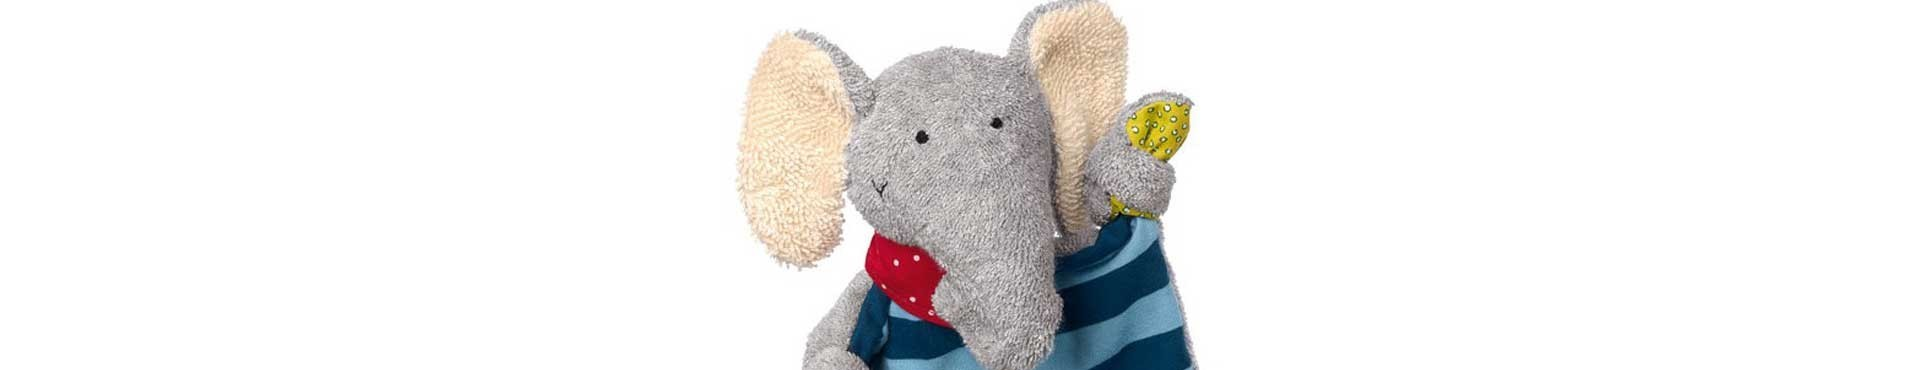 Peluche Animaux Sauvages